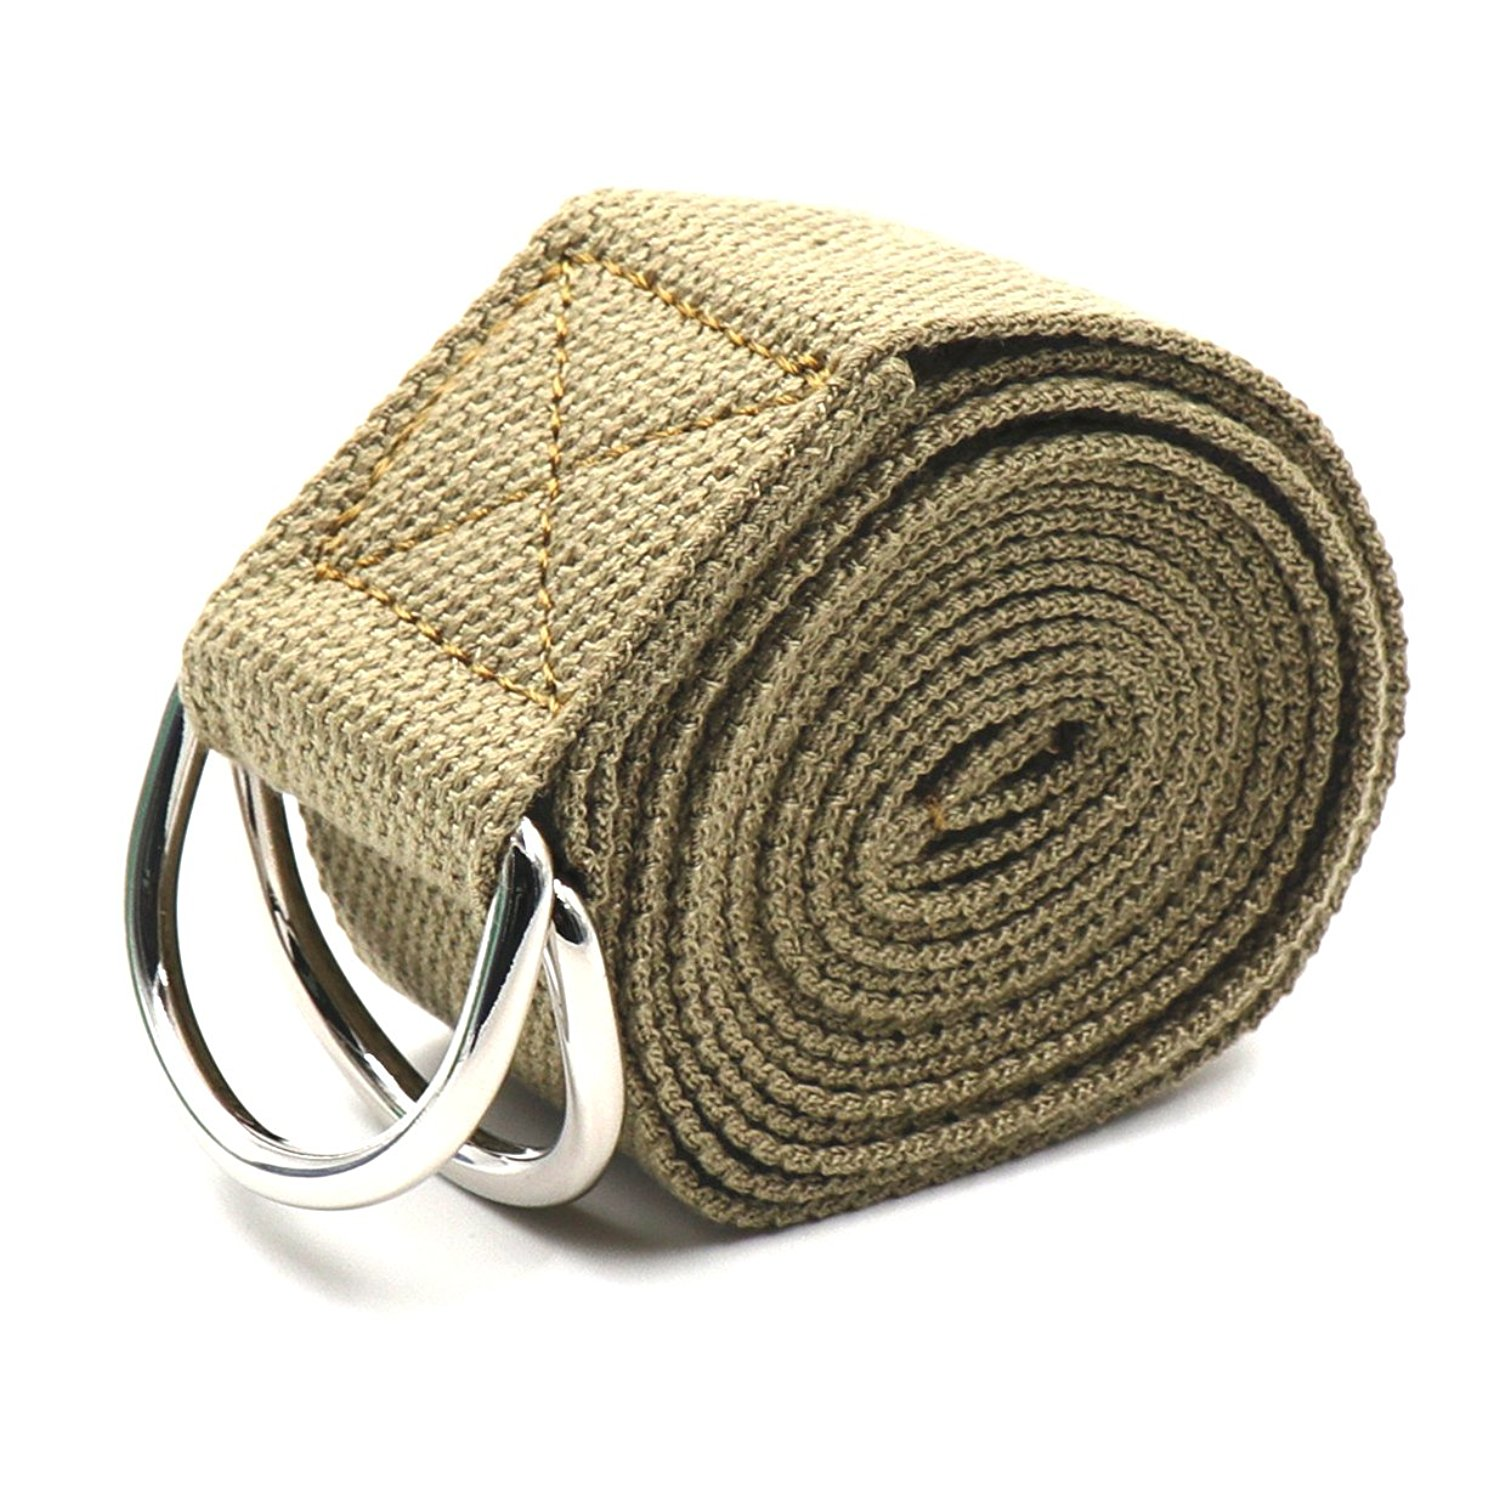 Teeoff Yoga Straps with Adjustable Metal D-Ring for Pilates Gym Workouts Stretching 8 Colors